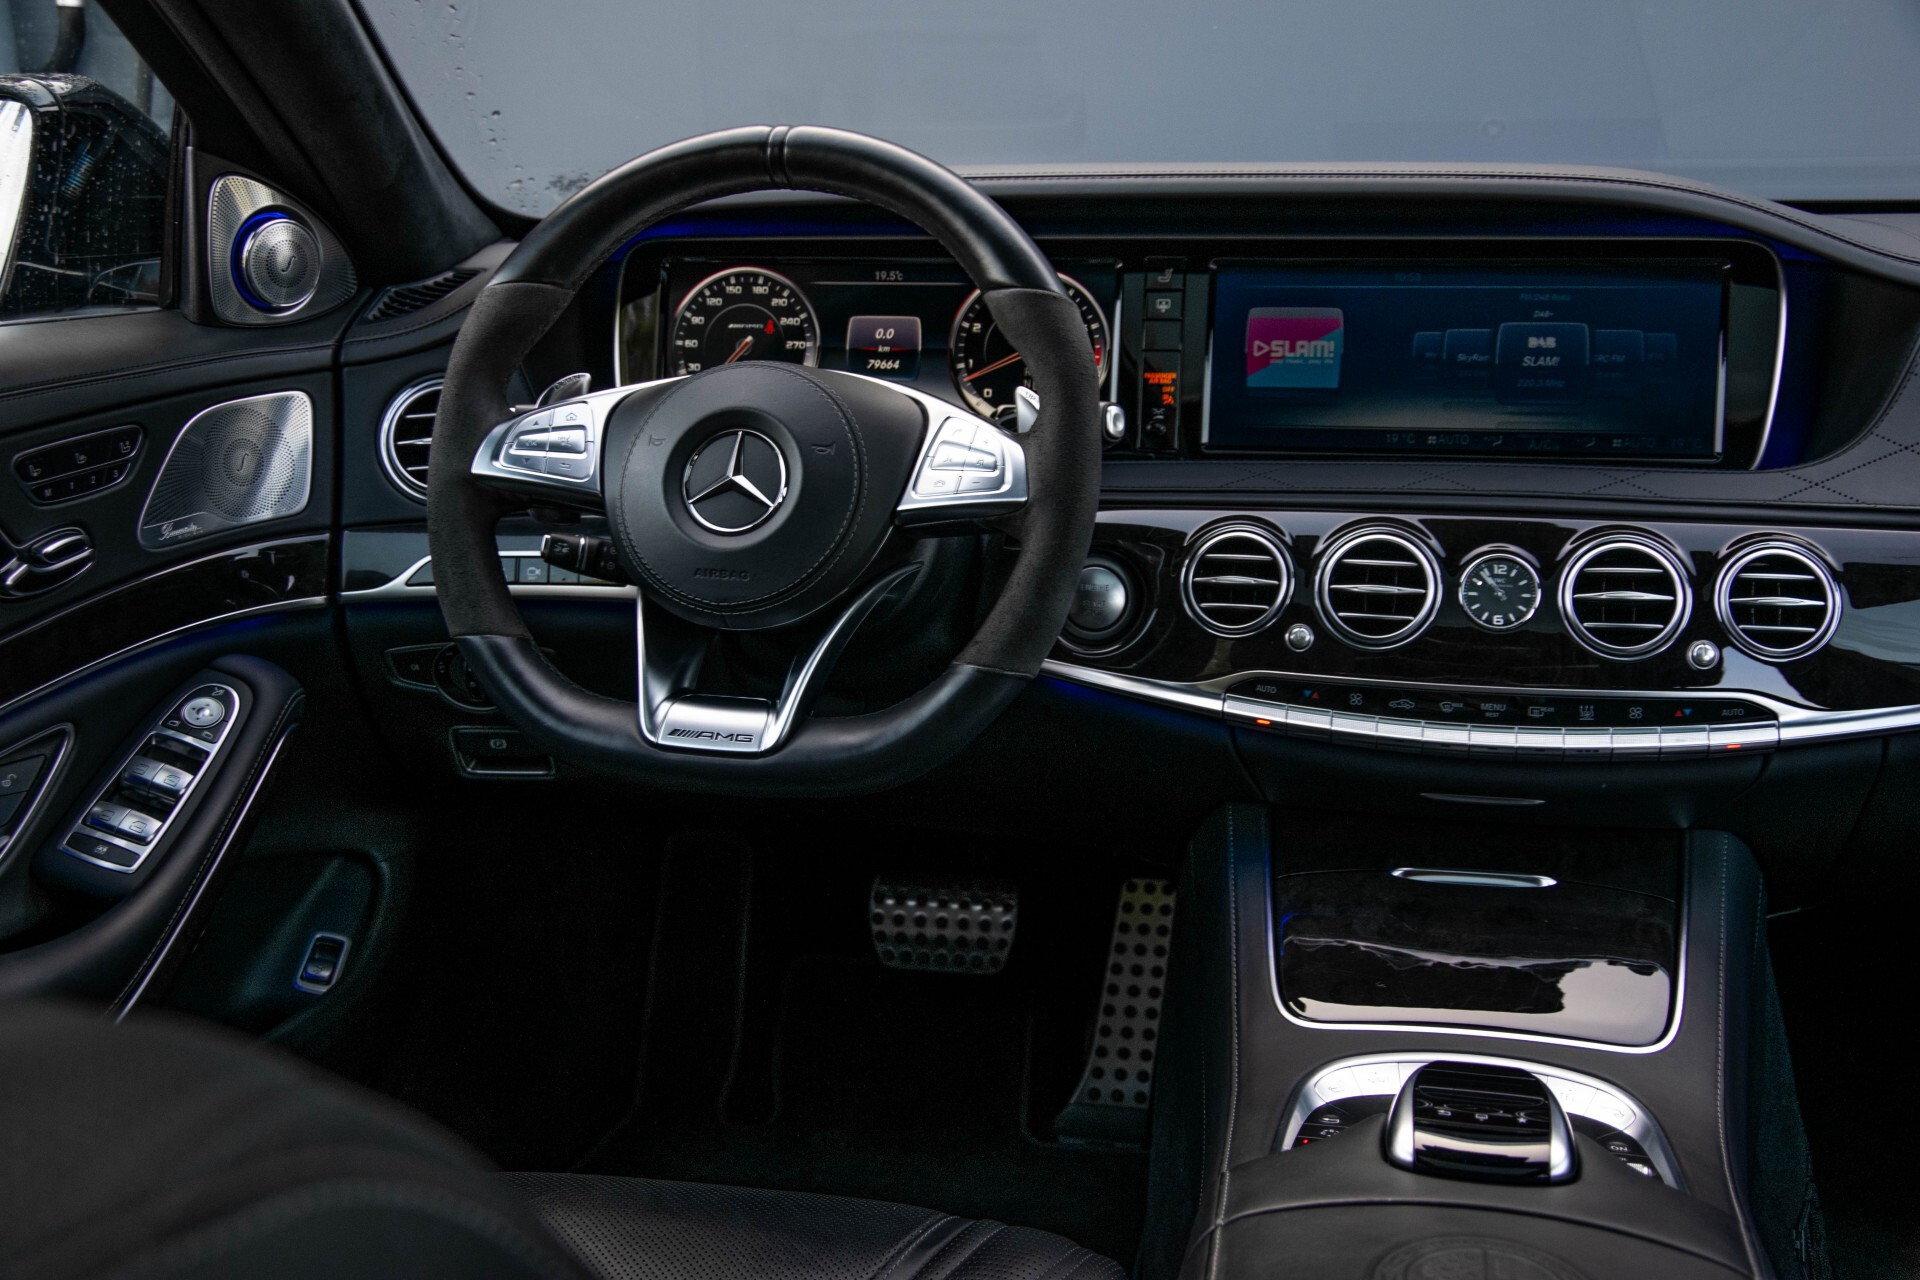 Mercedes-Benz S-Klasse 63 AMG Exclusive/Burmester High-End/Driverspack Aut7 Foto 6